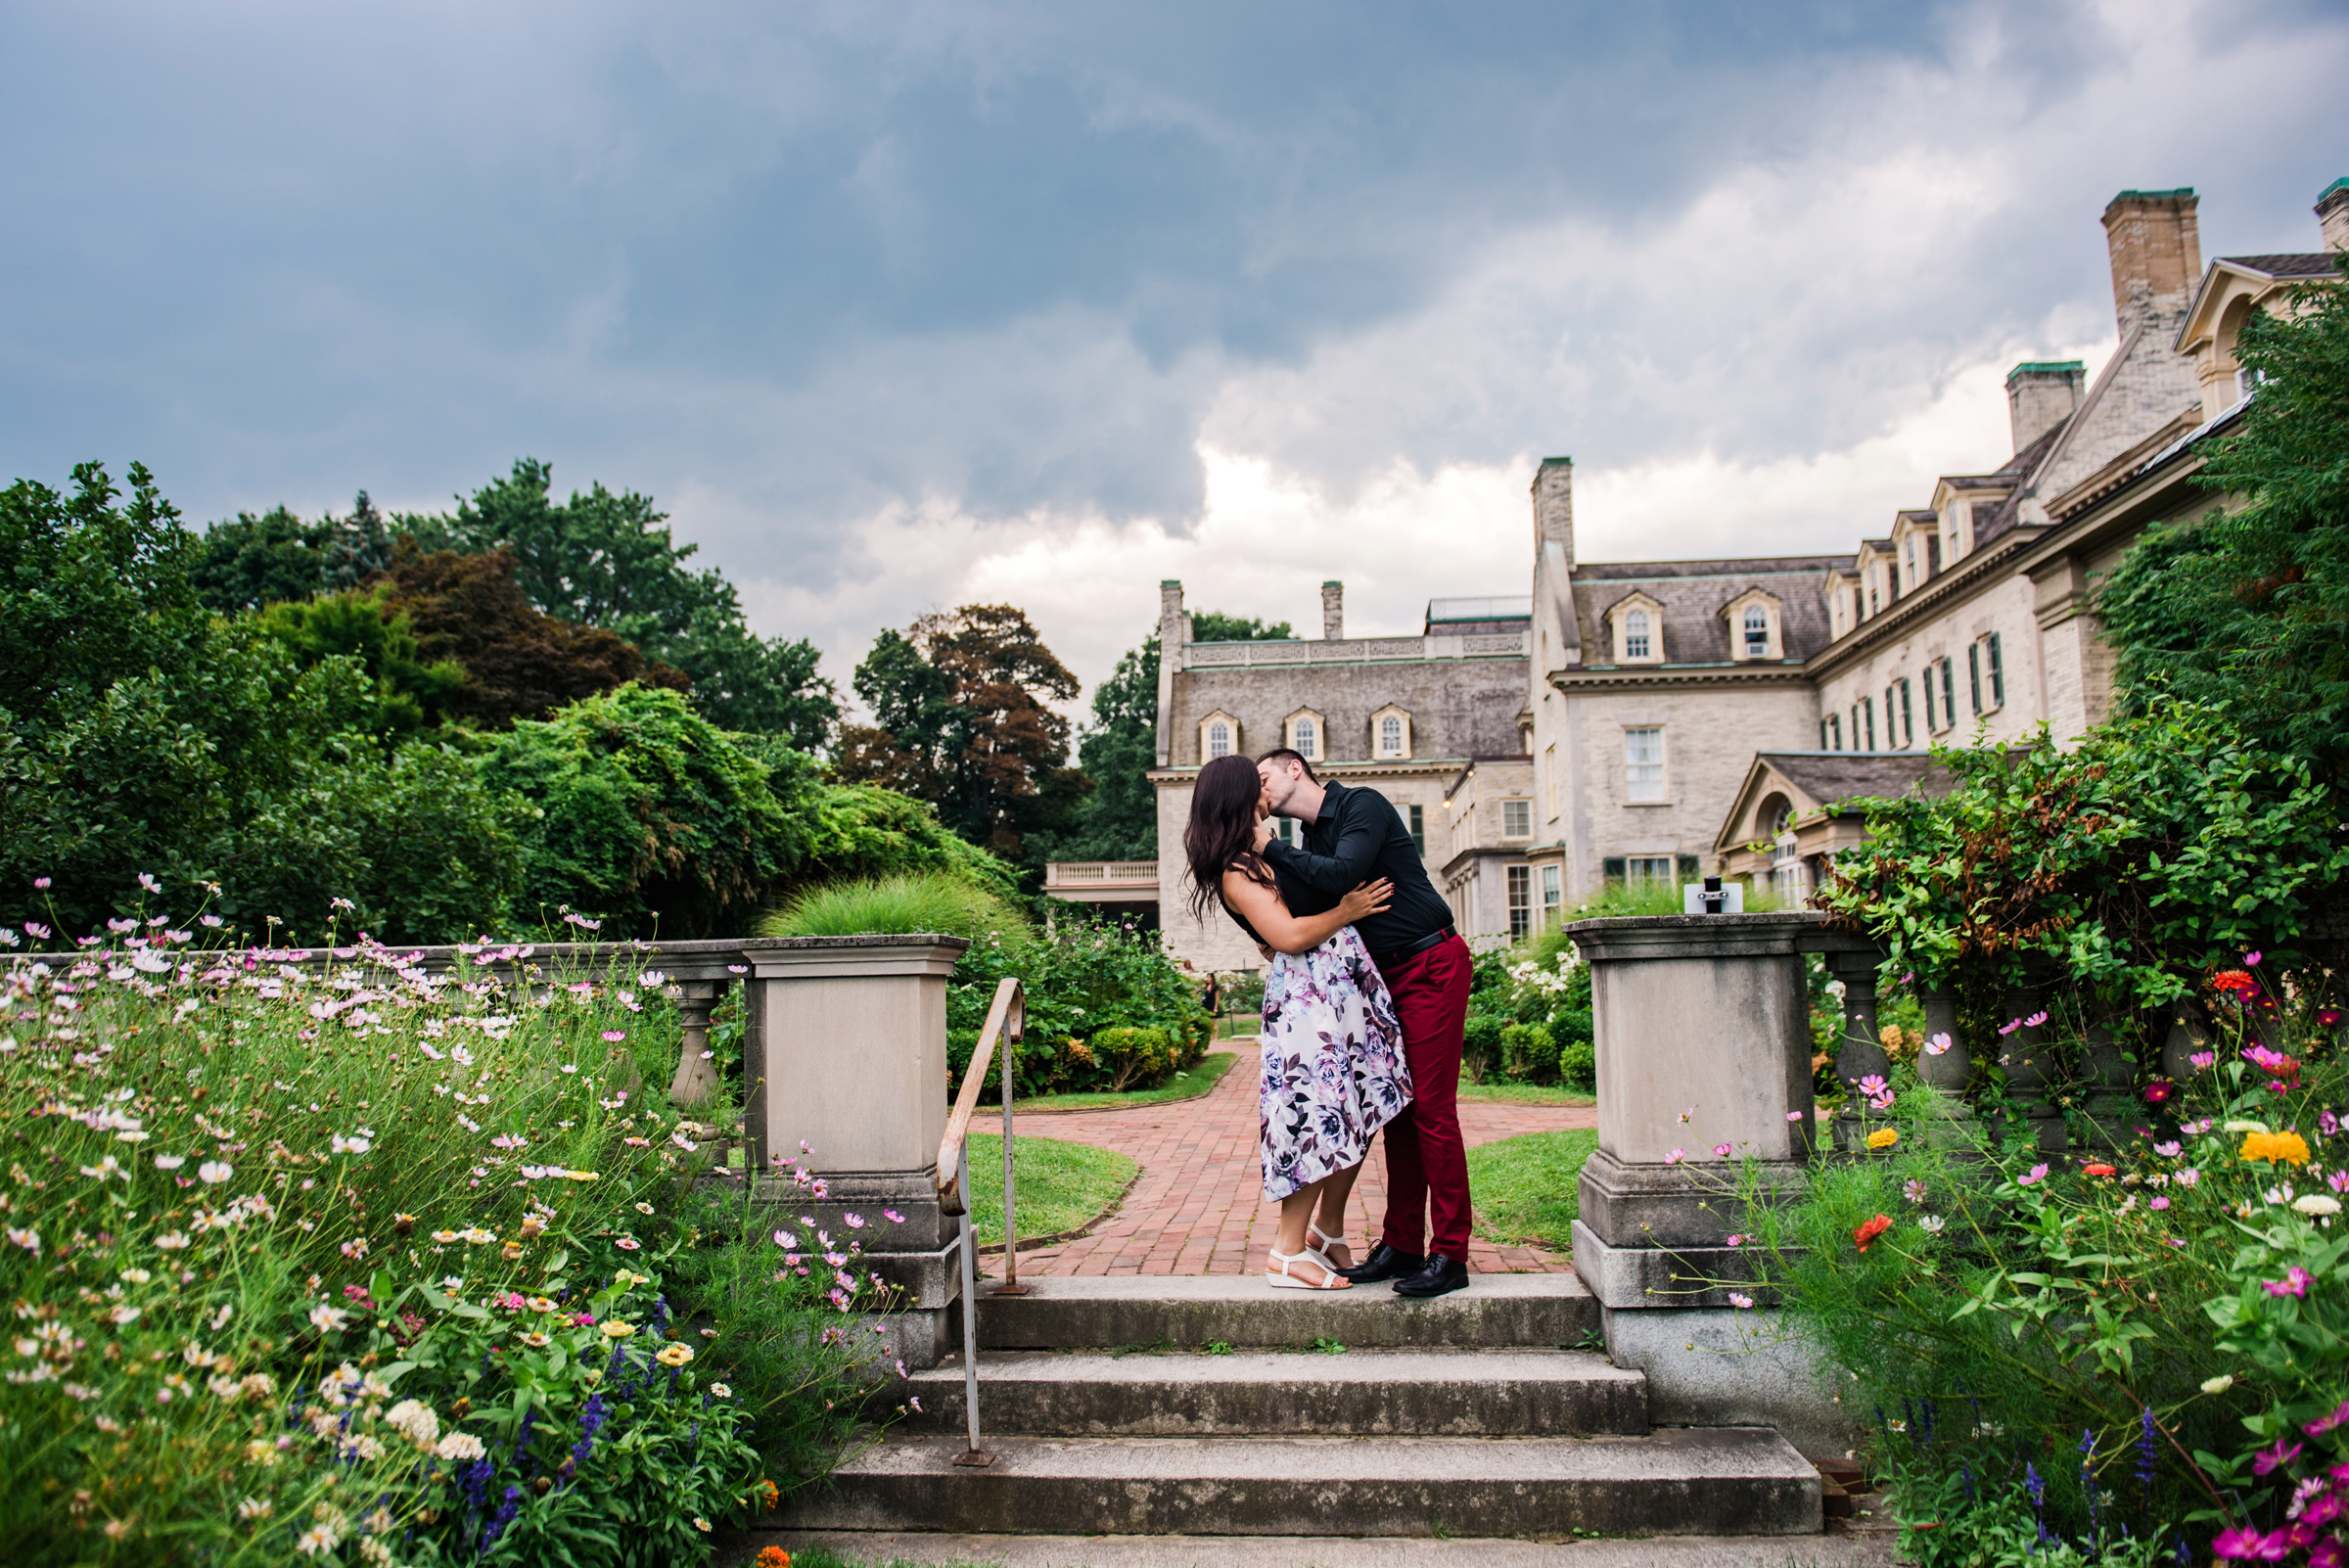 George_Eastman_House_Rochester_Engagement_Session_JILL_STUDIO_Rochester_NY_Photographer_DSC_6340.jpg